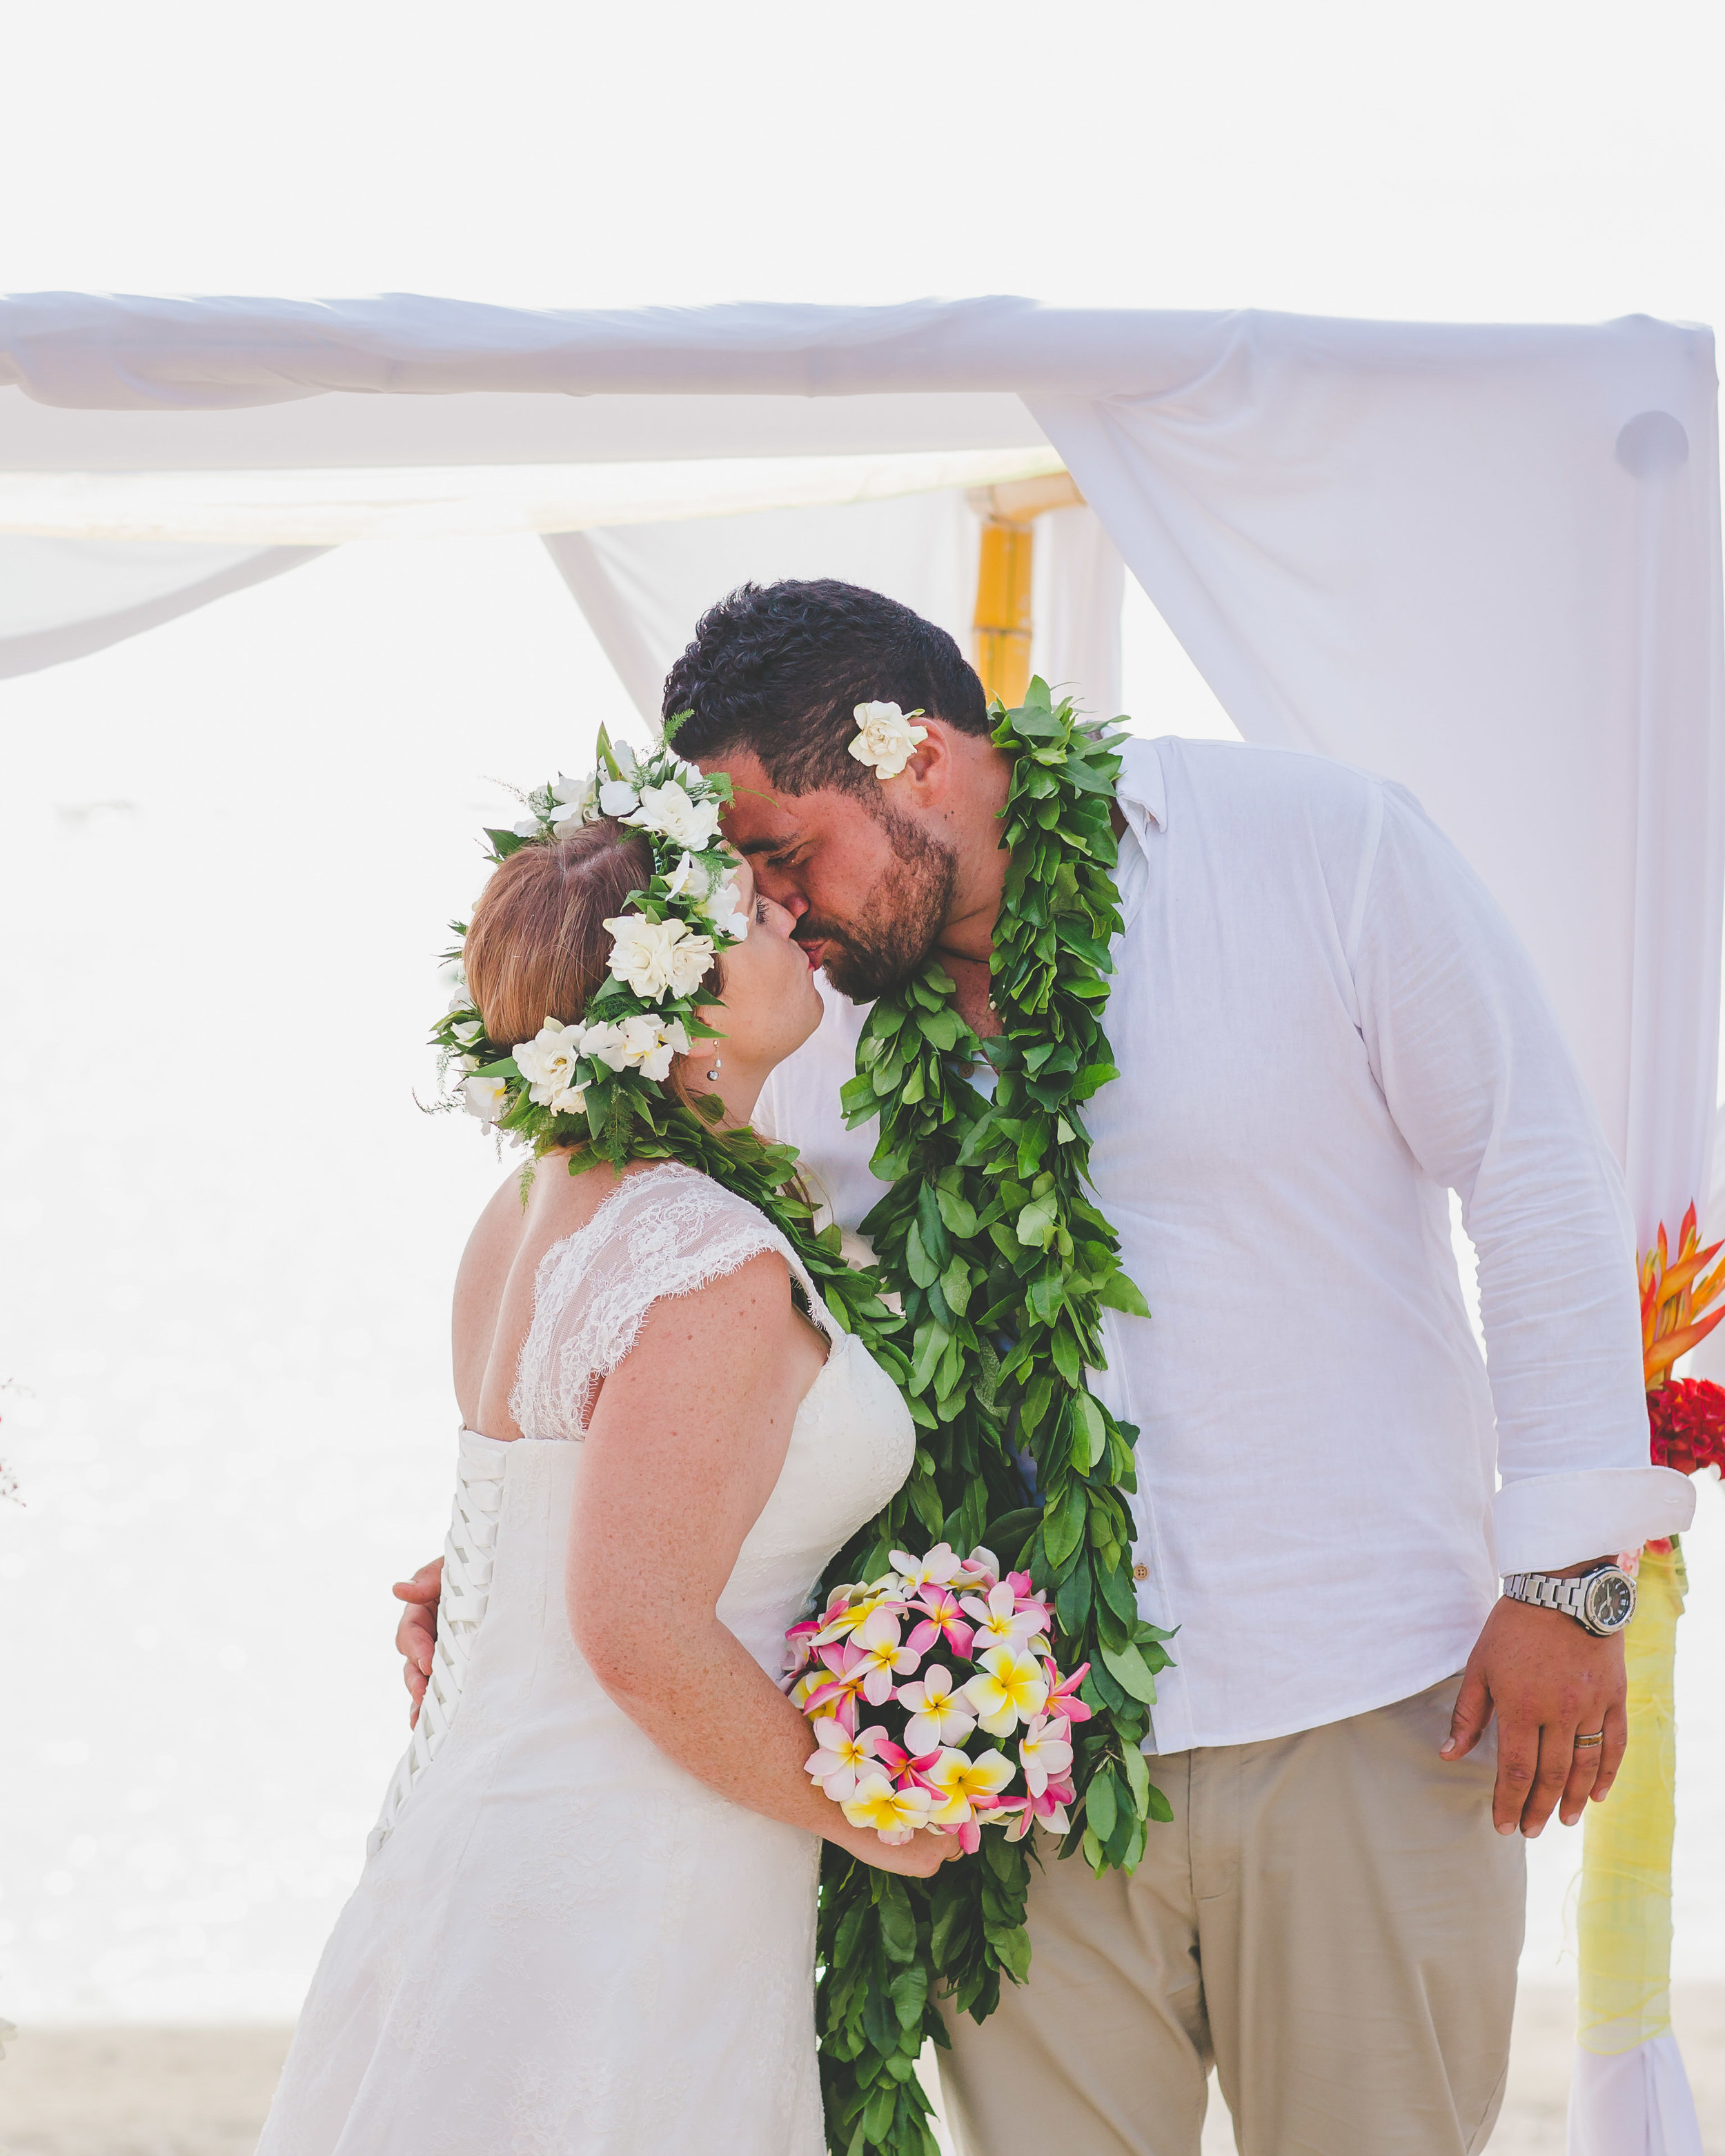 Wedding kiss Beach wedding Cook Islands